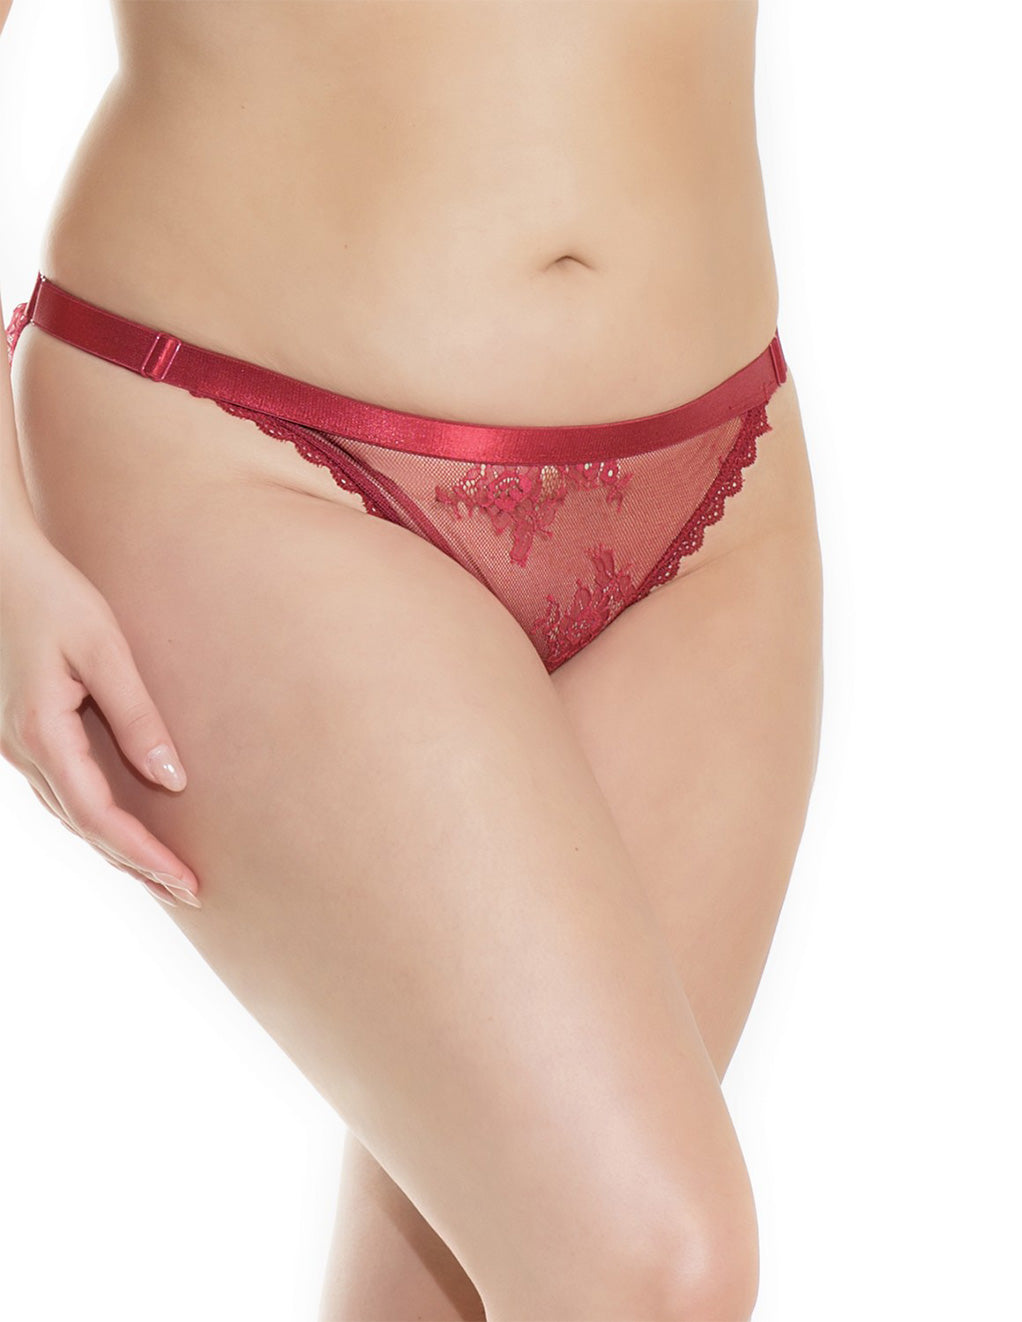 Low-Rise Mesh Satin Trim Panty- Plus size- Front